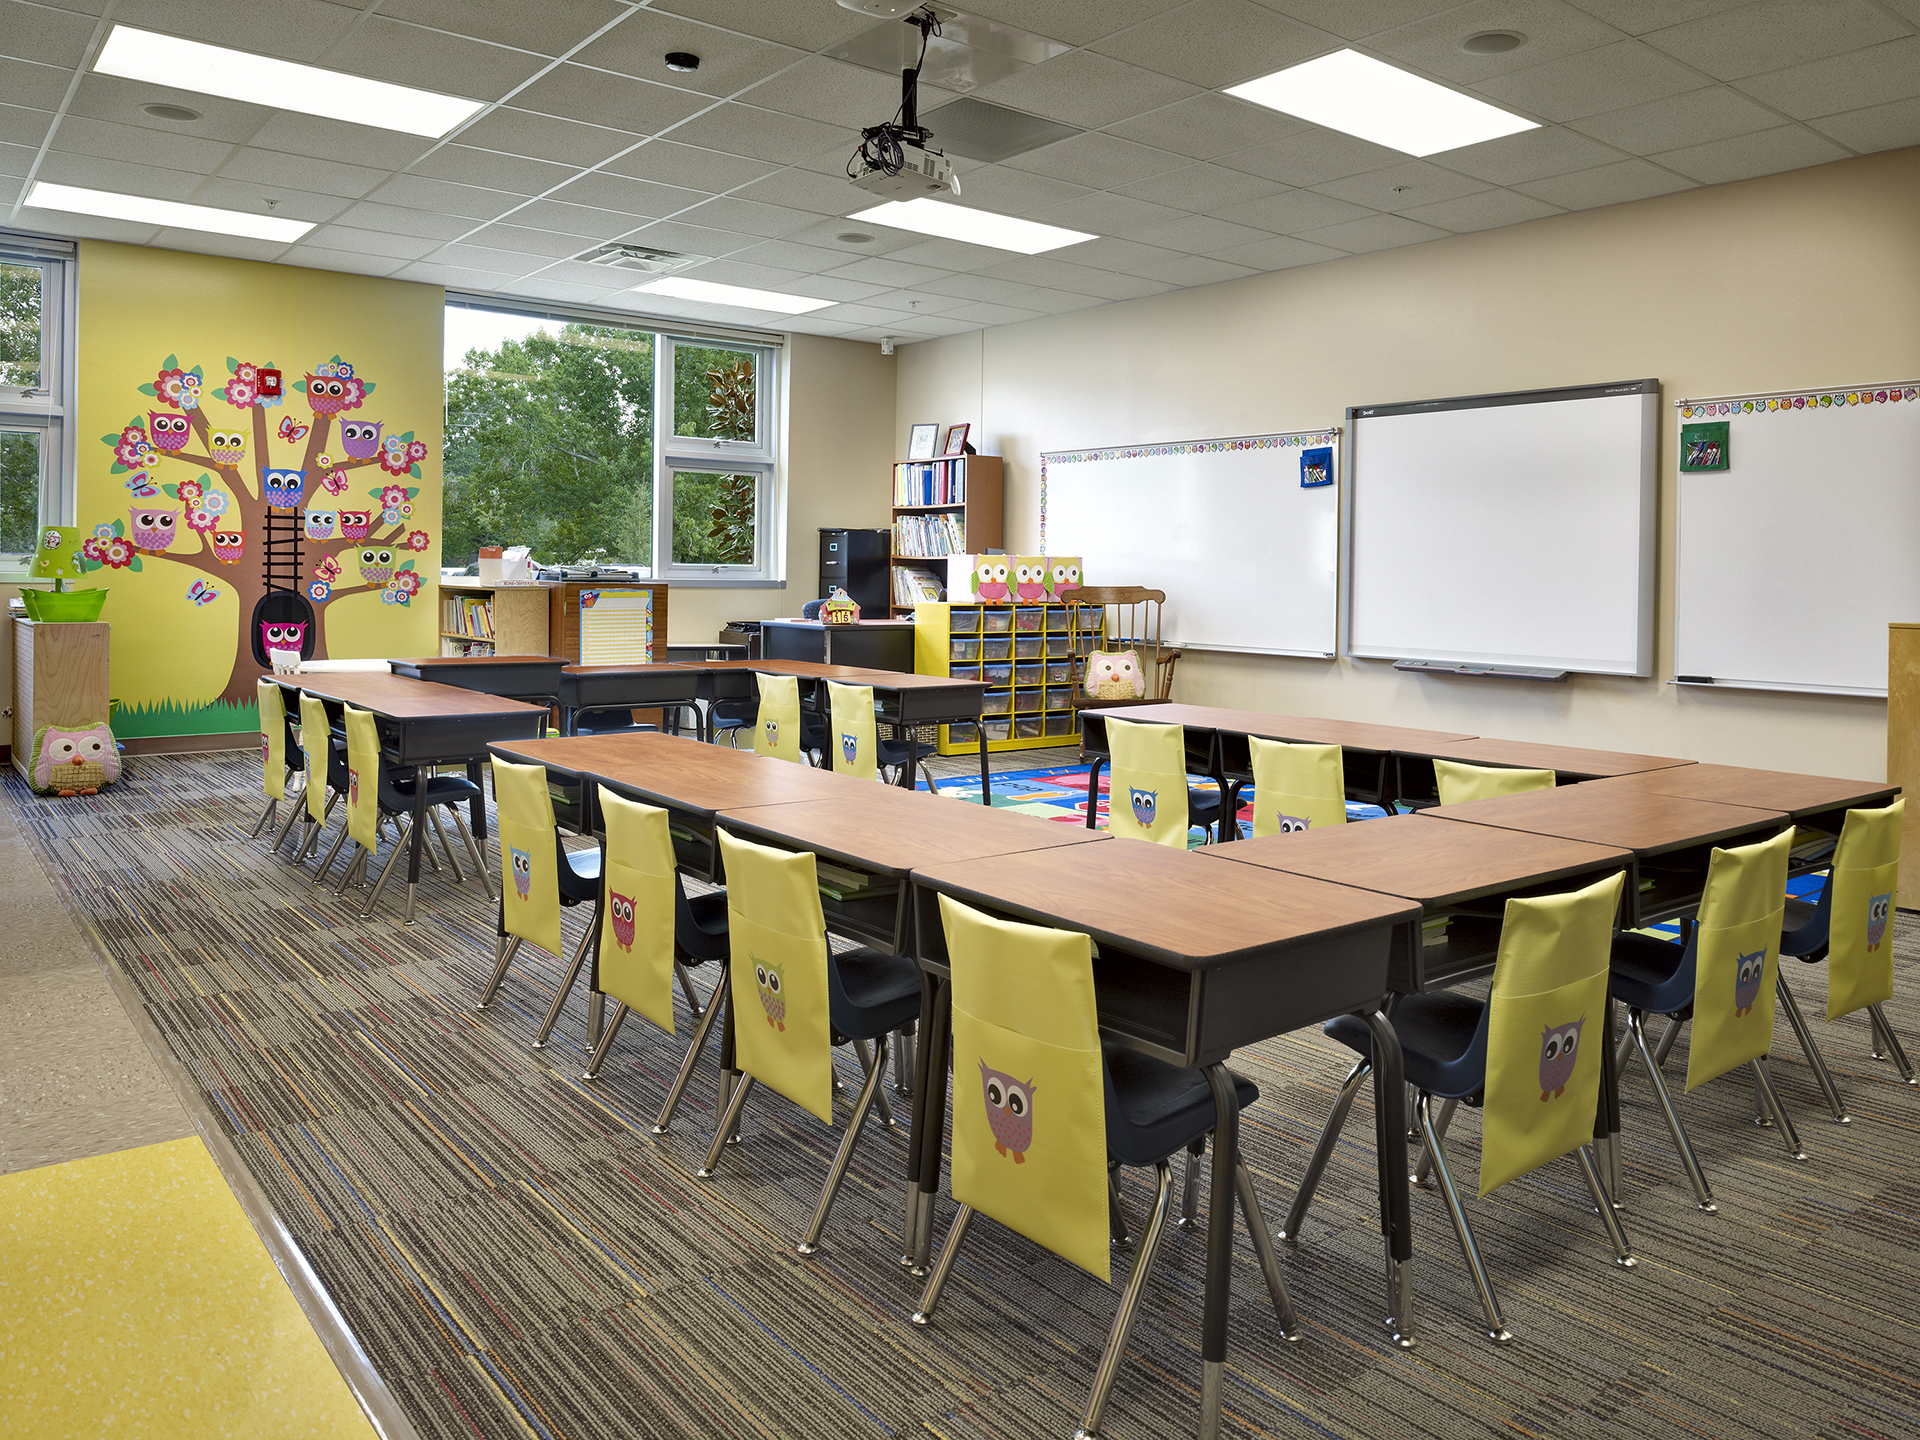 Classroom Design Project : Located in winter park brookshire elementary school